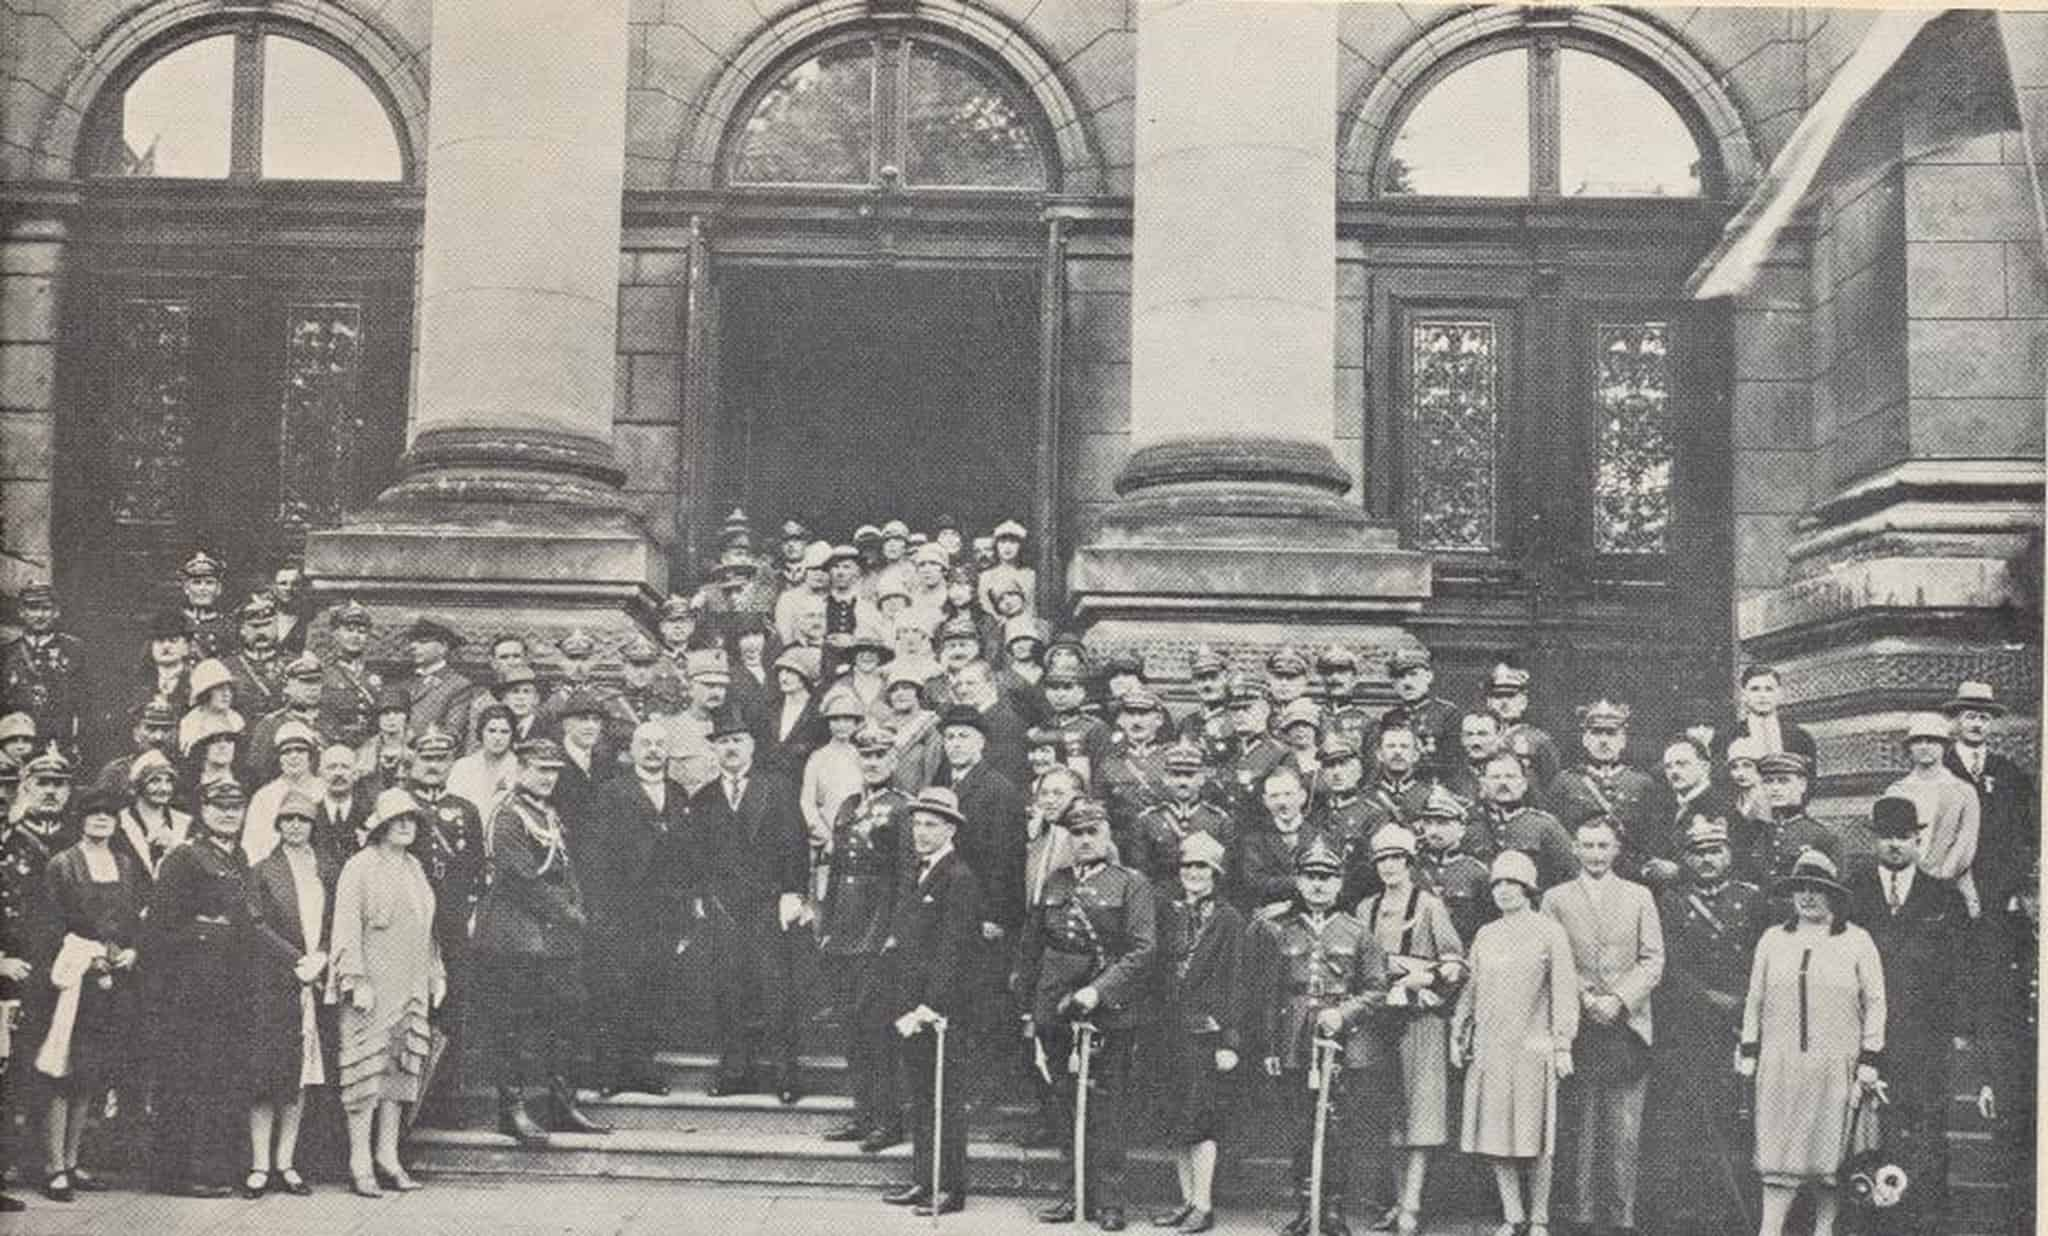 Founders of The Society for the Encouragement of Fine Arts, Warsaw